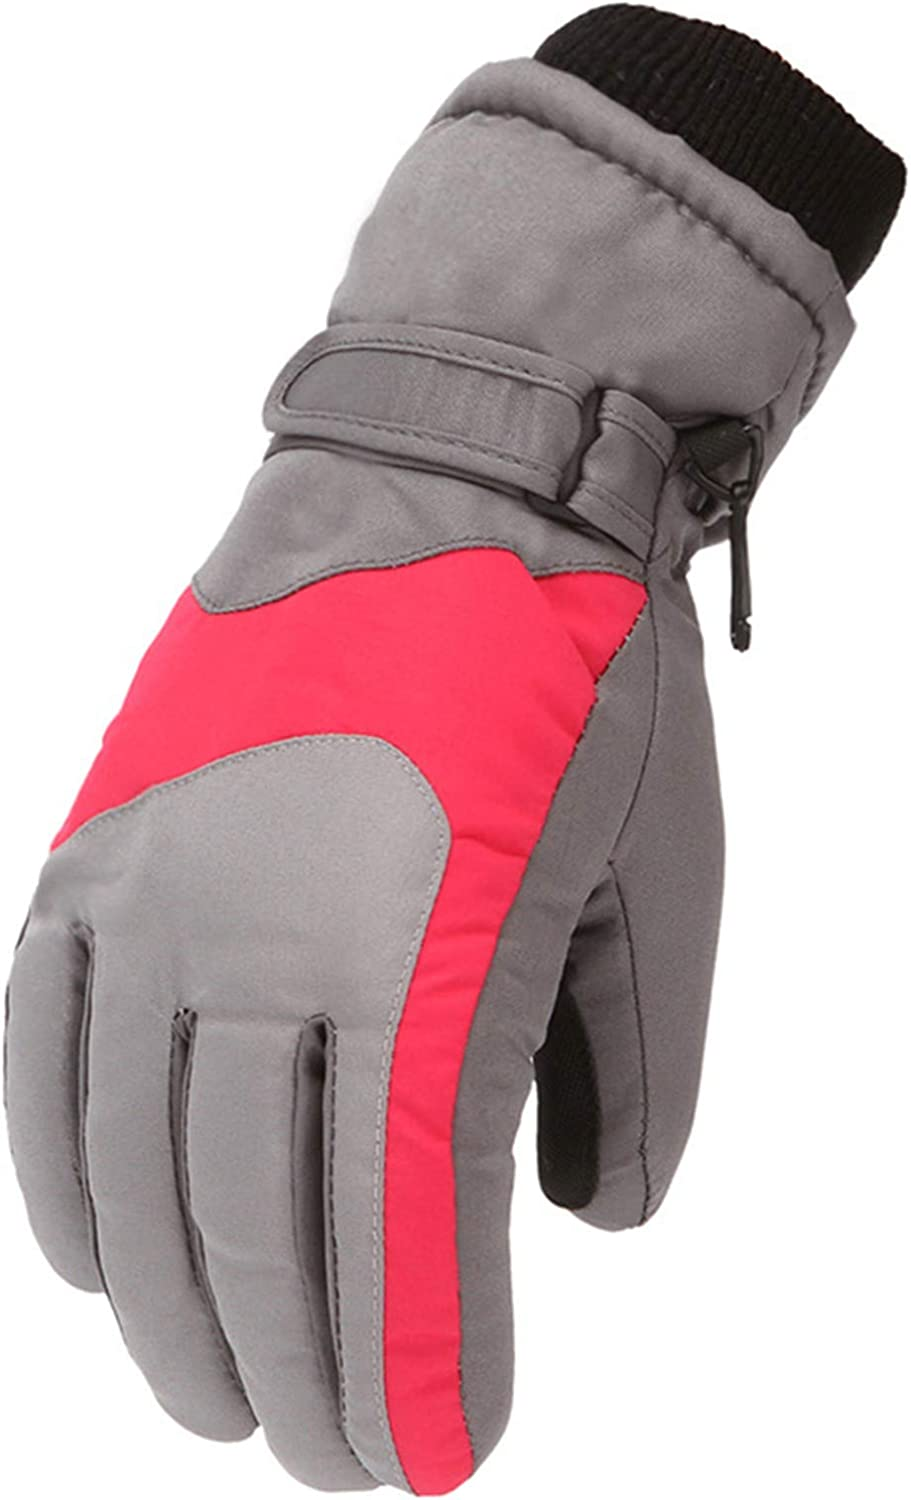 Ski Gloves for Boys Girls Waterproof Windproof Snow Skiing Mittens with Belt